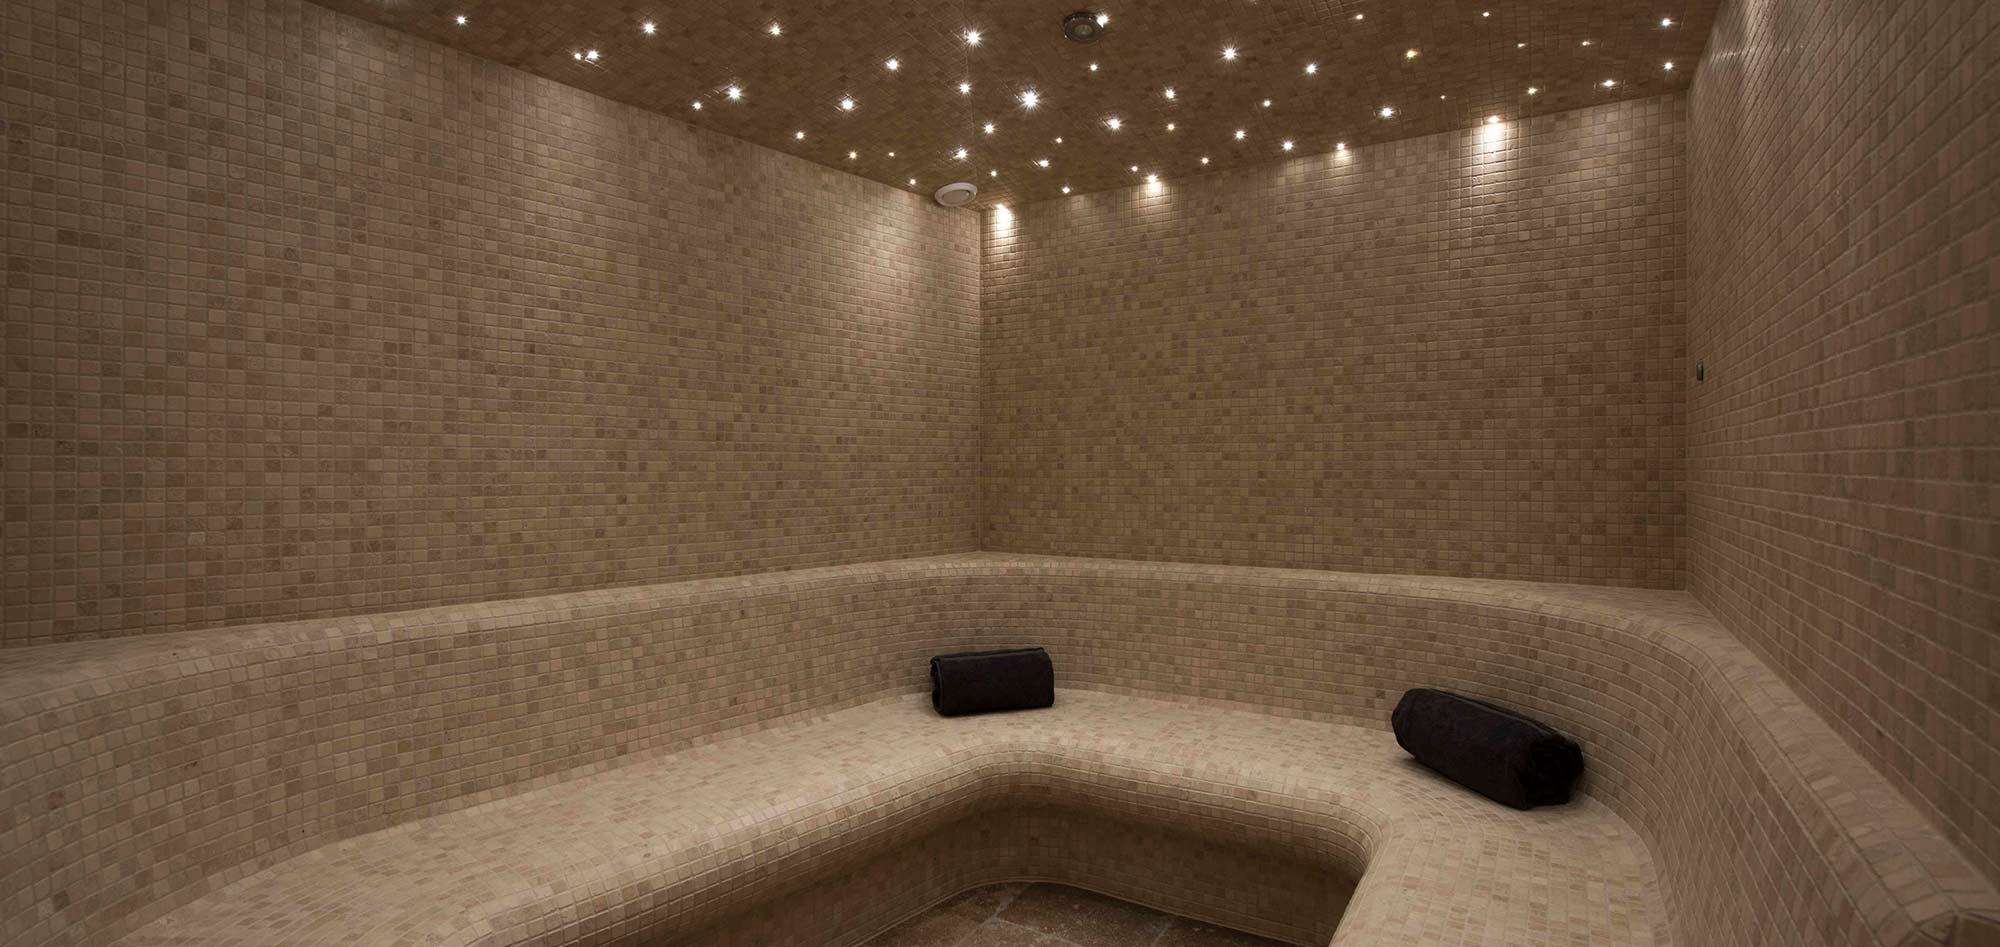 tiled hammam with star effect ceiling lights